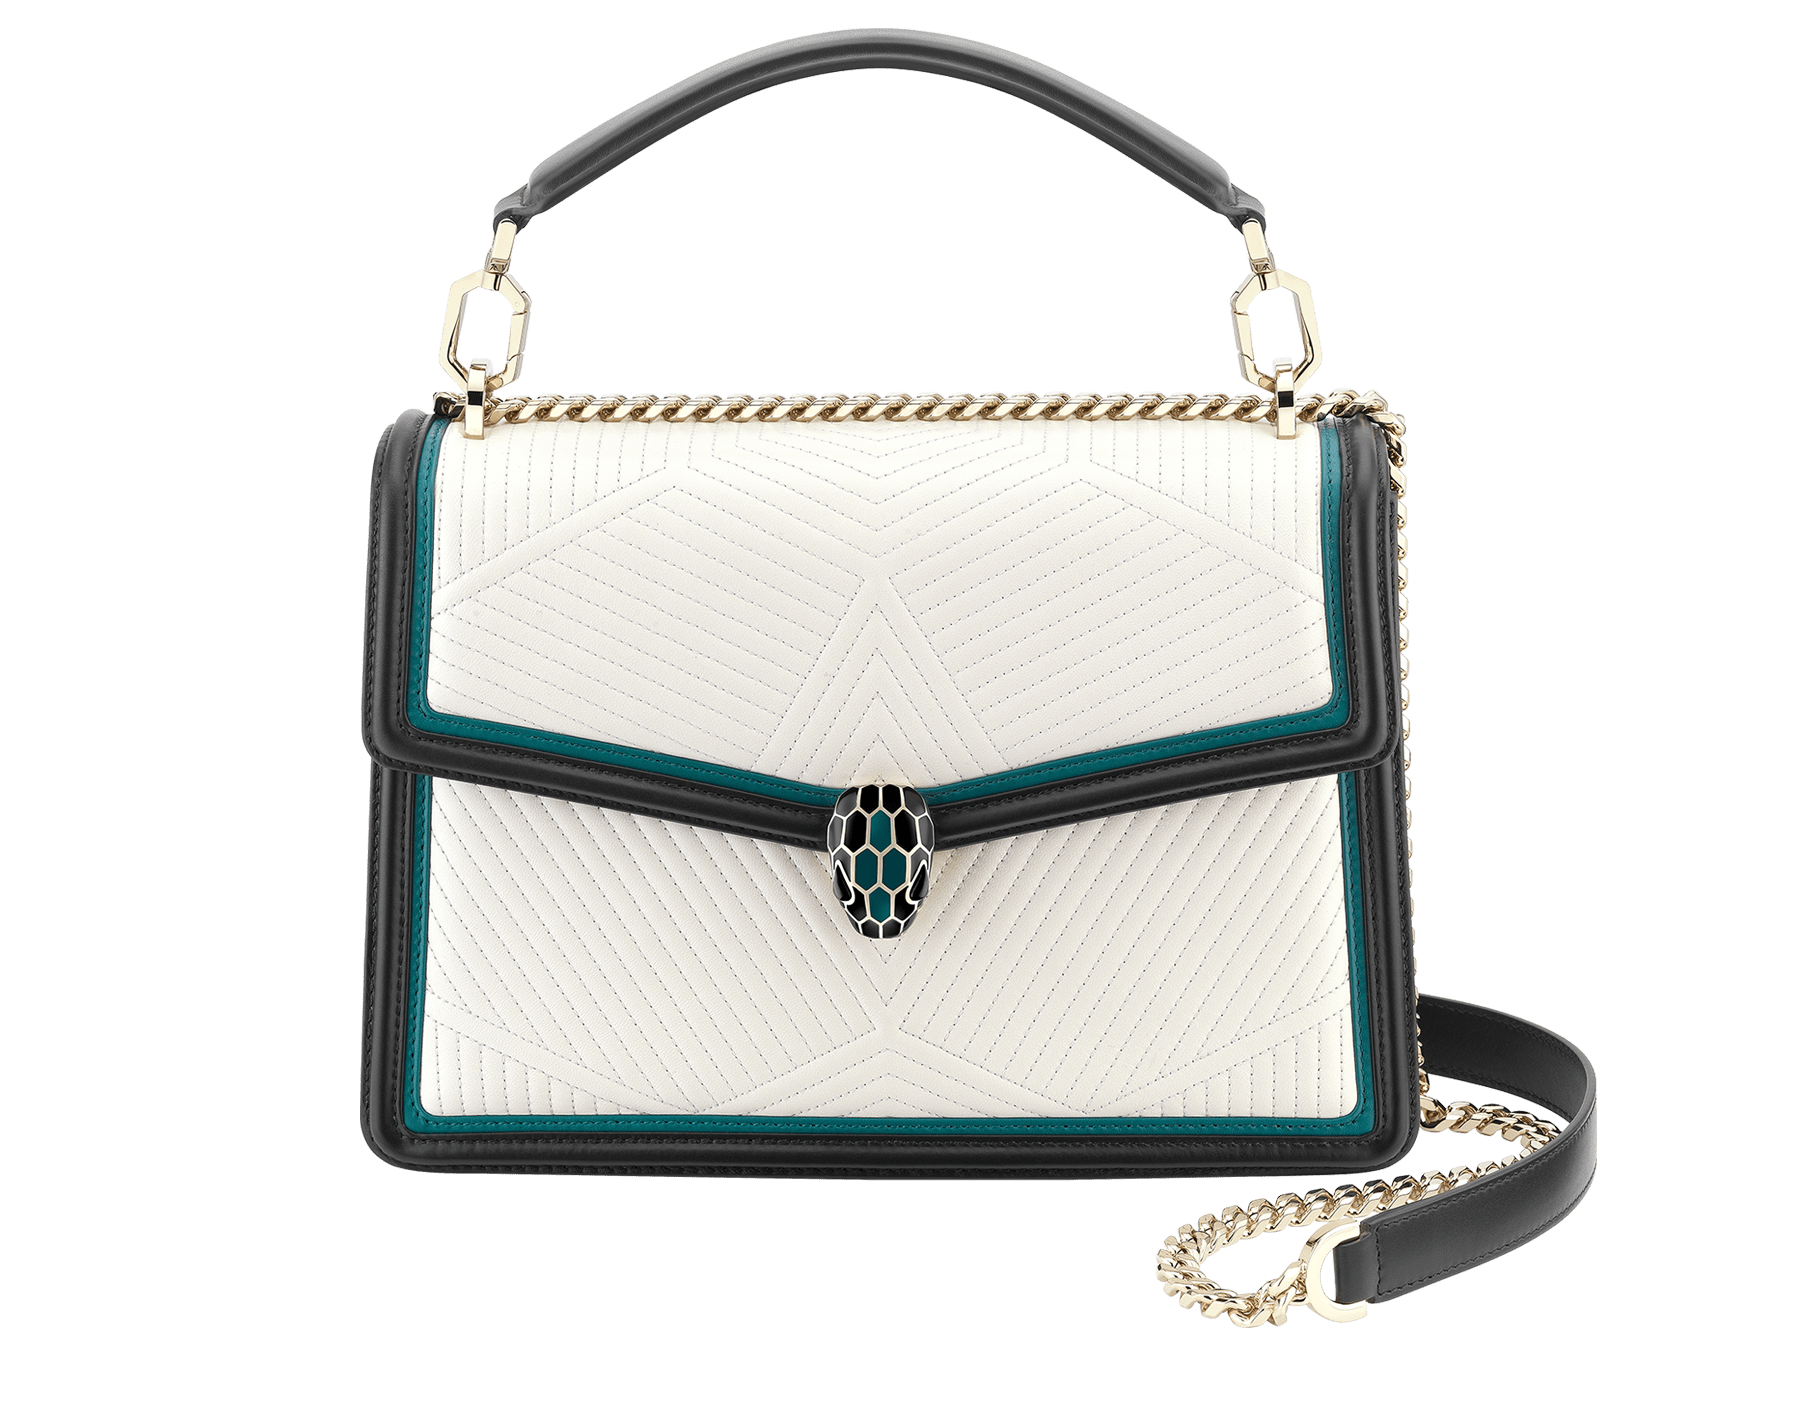 Serpenti Diamond Blast shoulder bag in white agate quilted nappa leather body and deep jade and black calf leather frames. Snakehead closure in light gold plated brass decorated with deep jade and black enamel, and black onyx eyes. 287971 image 1